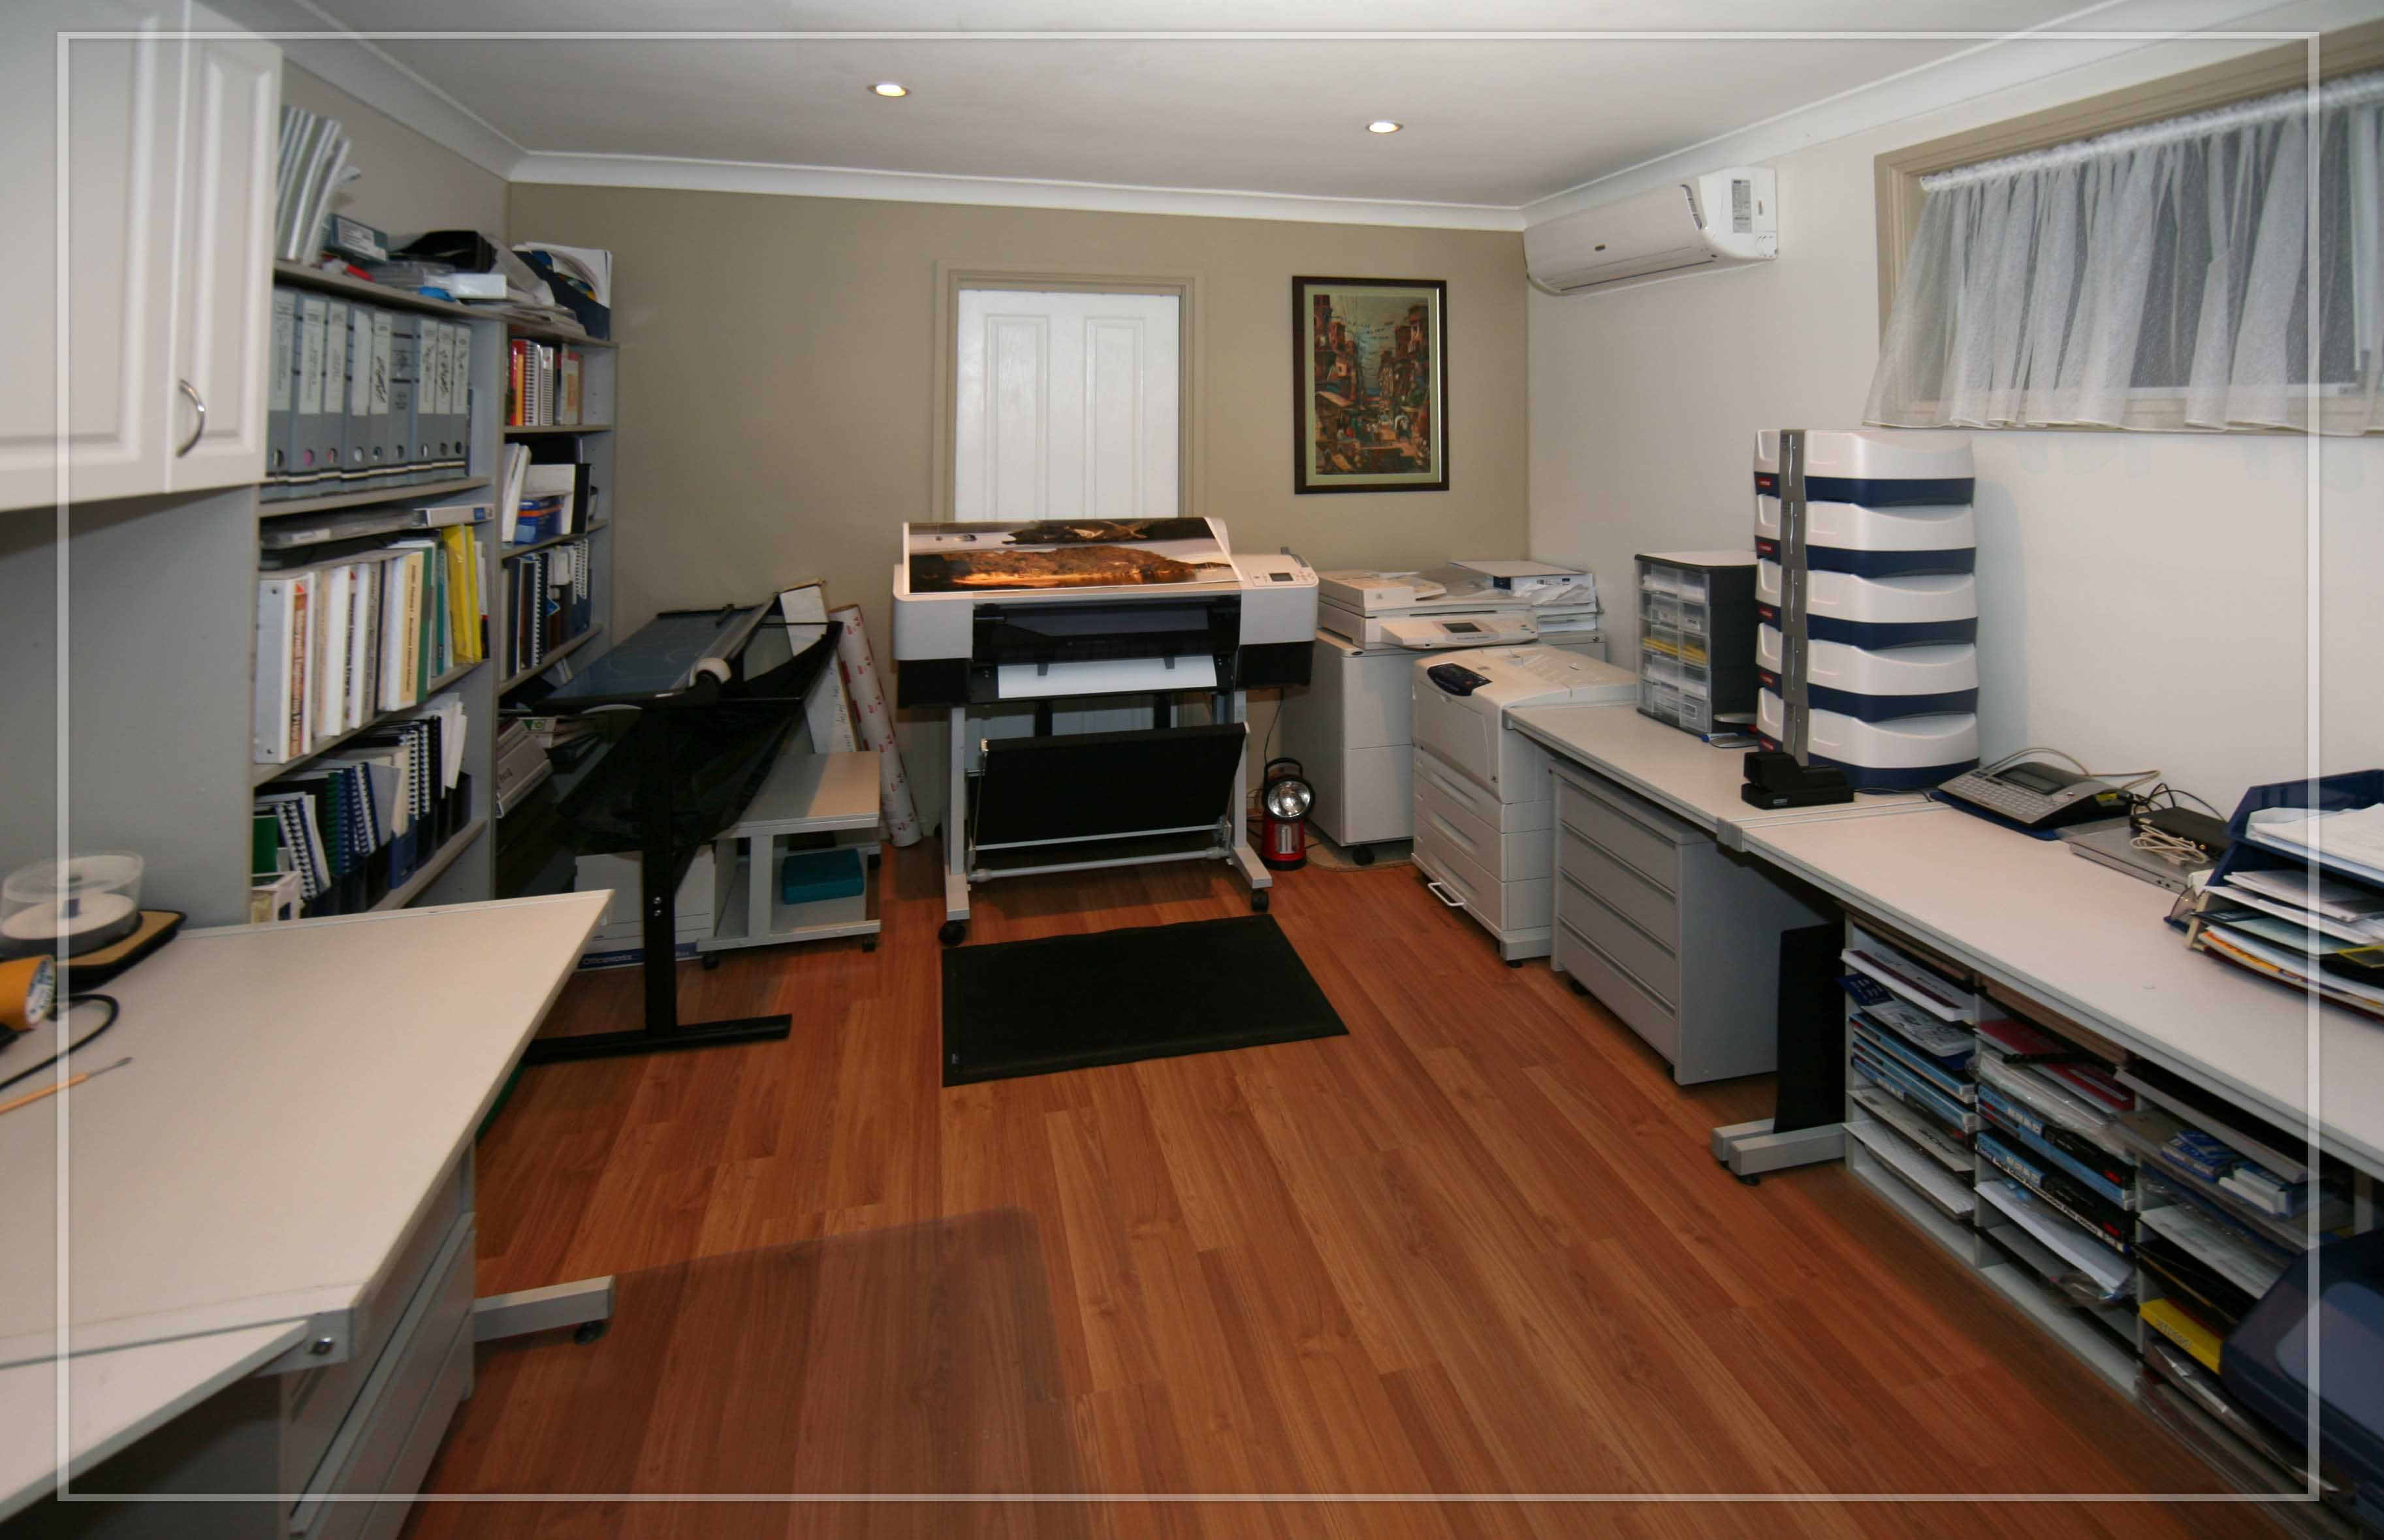 Los angeles garage office Decor Get Complete Solutions For Garage Conversions In Los Angeles From The Experts victoryhomeremodeling kitchenremodeling bathroomremodeling Nest Seekers Get Complete Solutions For Garage Conversions In Los Angeles From